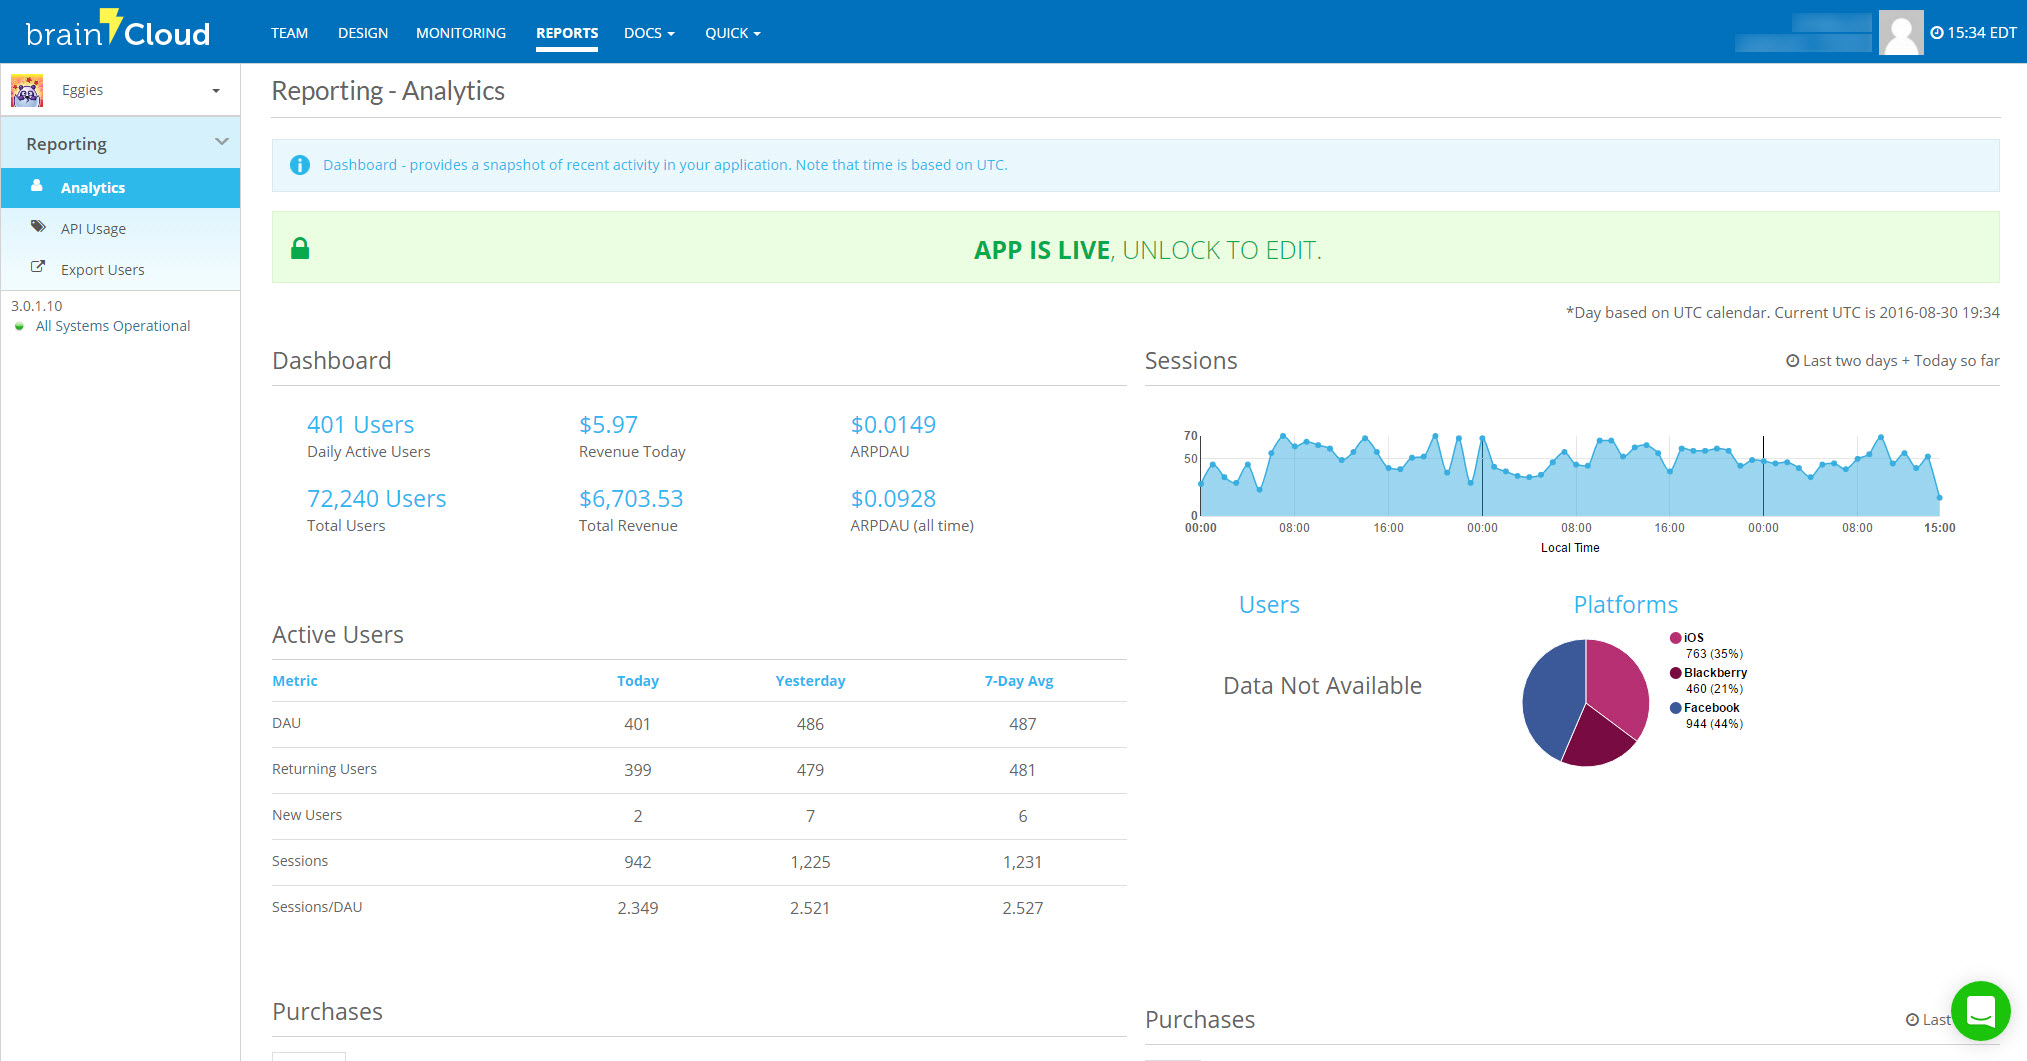 brainCloud Dashboard